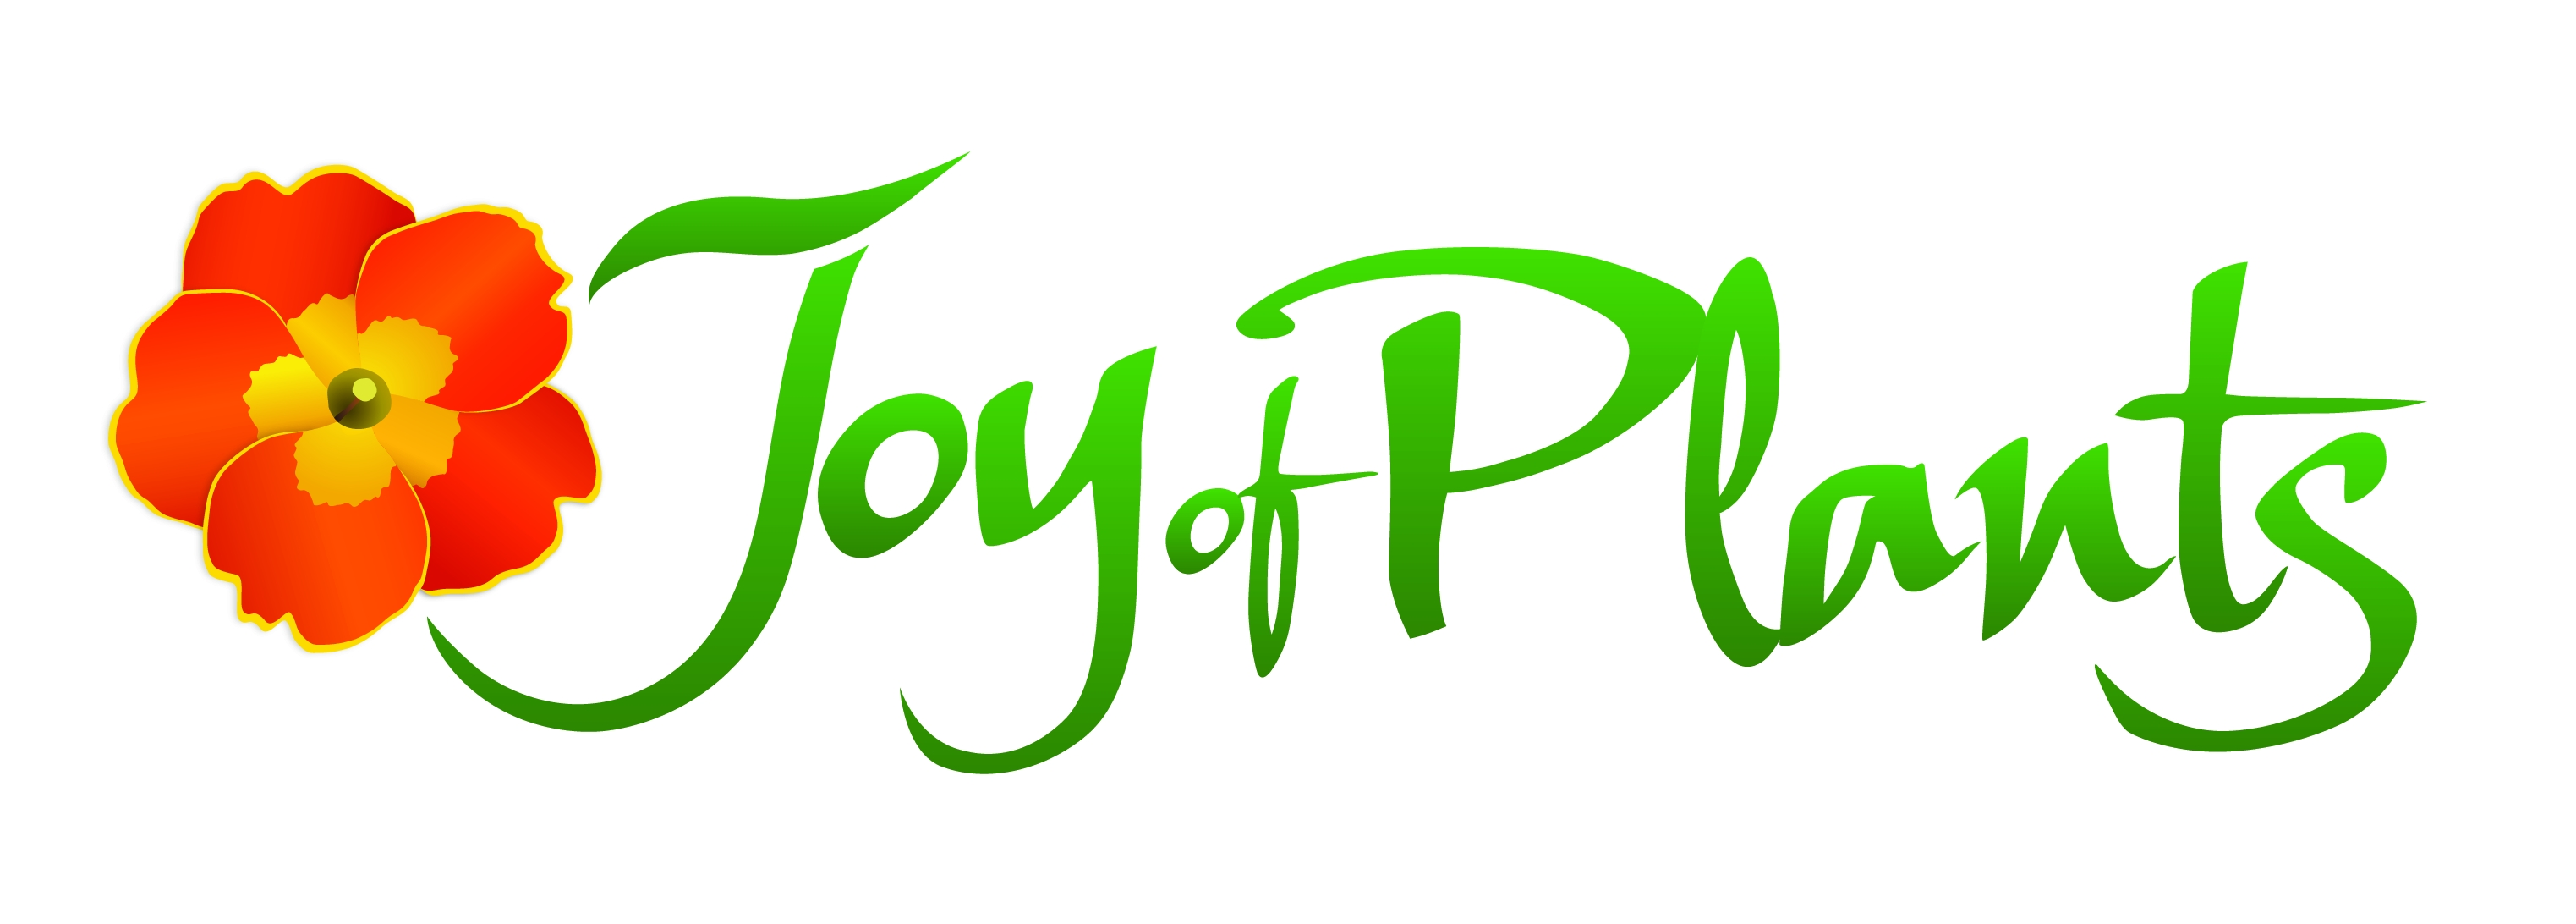 Joy of Plants logo hi res